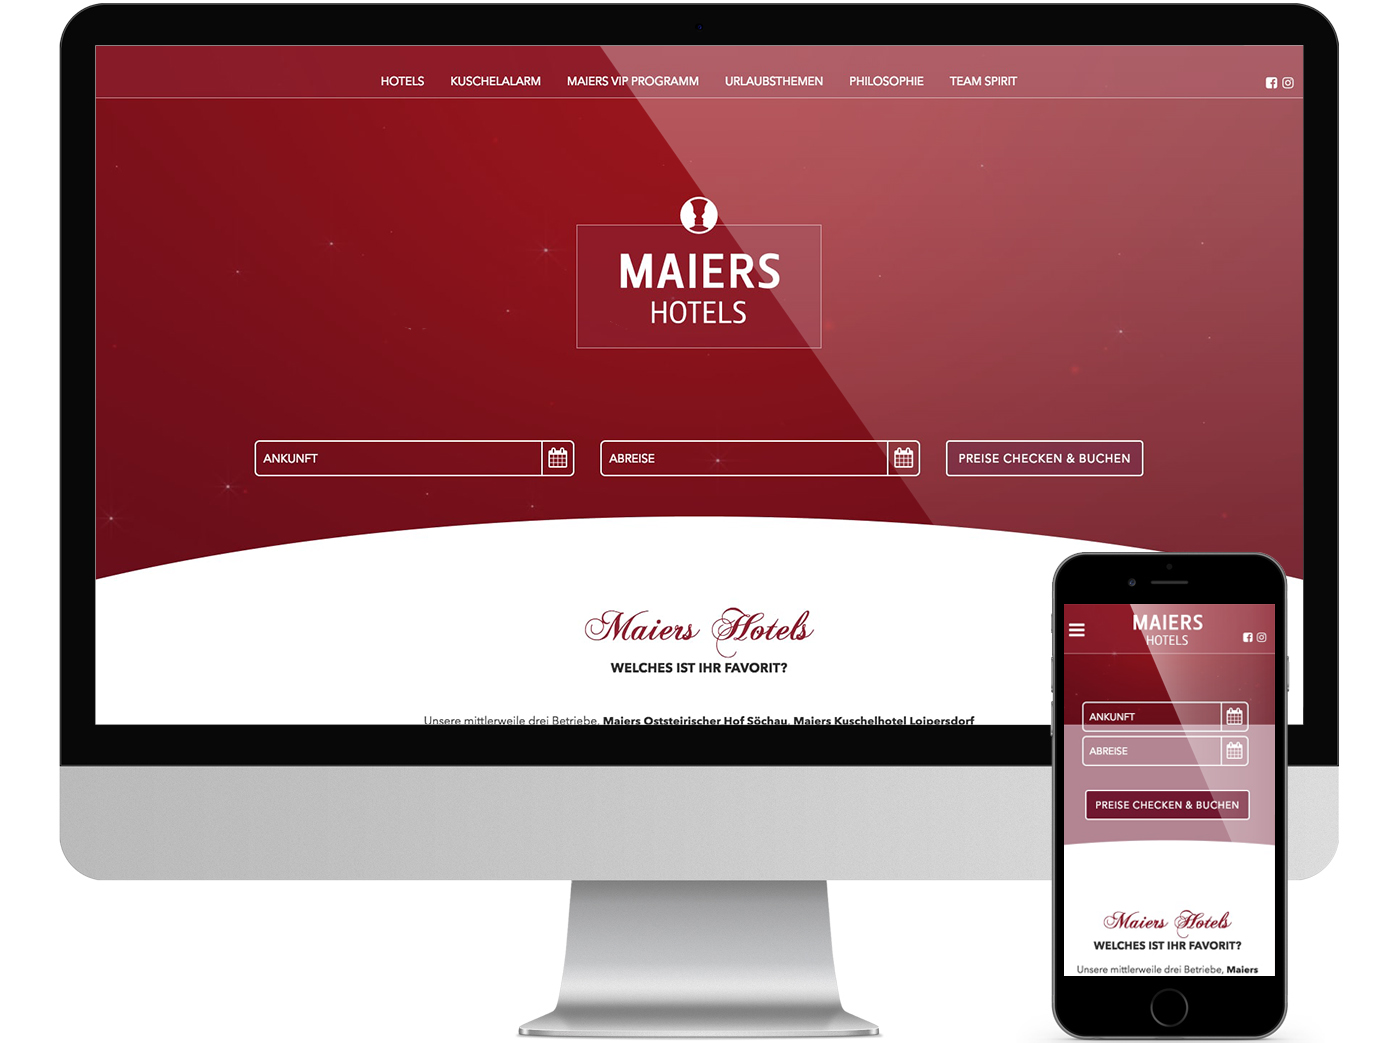 Maiers Hotels